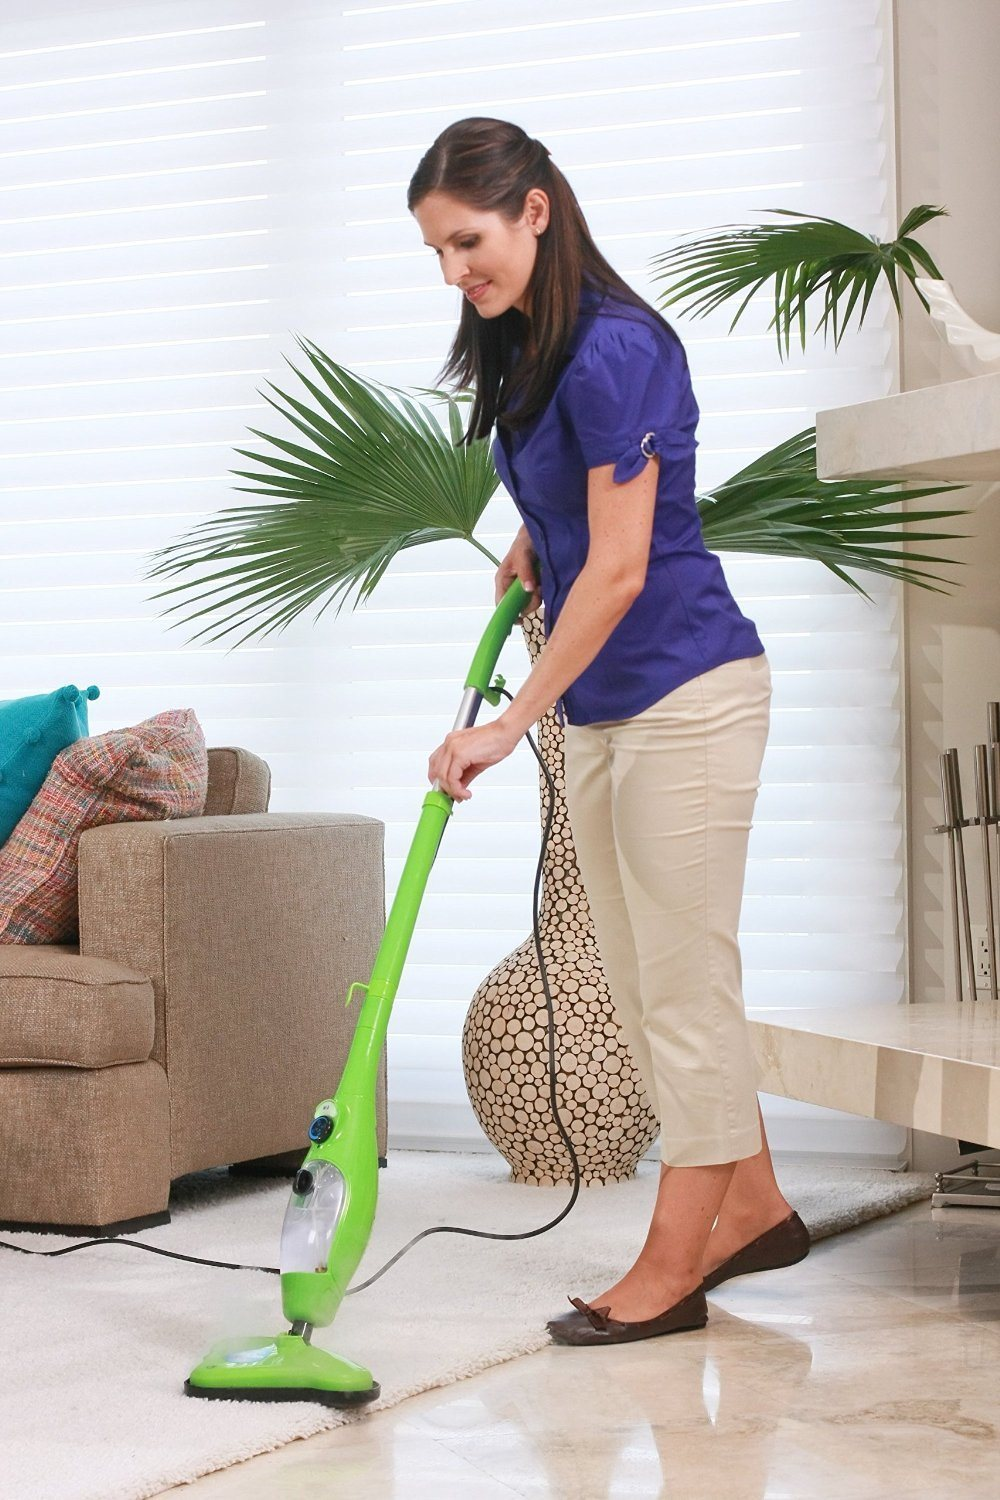 Steam Mop Floor & Handheld Steamer Floor Mop 5 in 1 Steam Cleaner